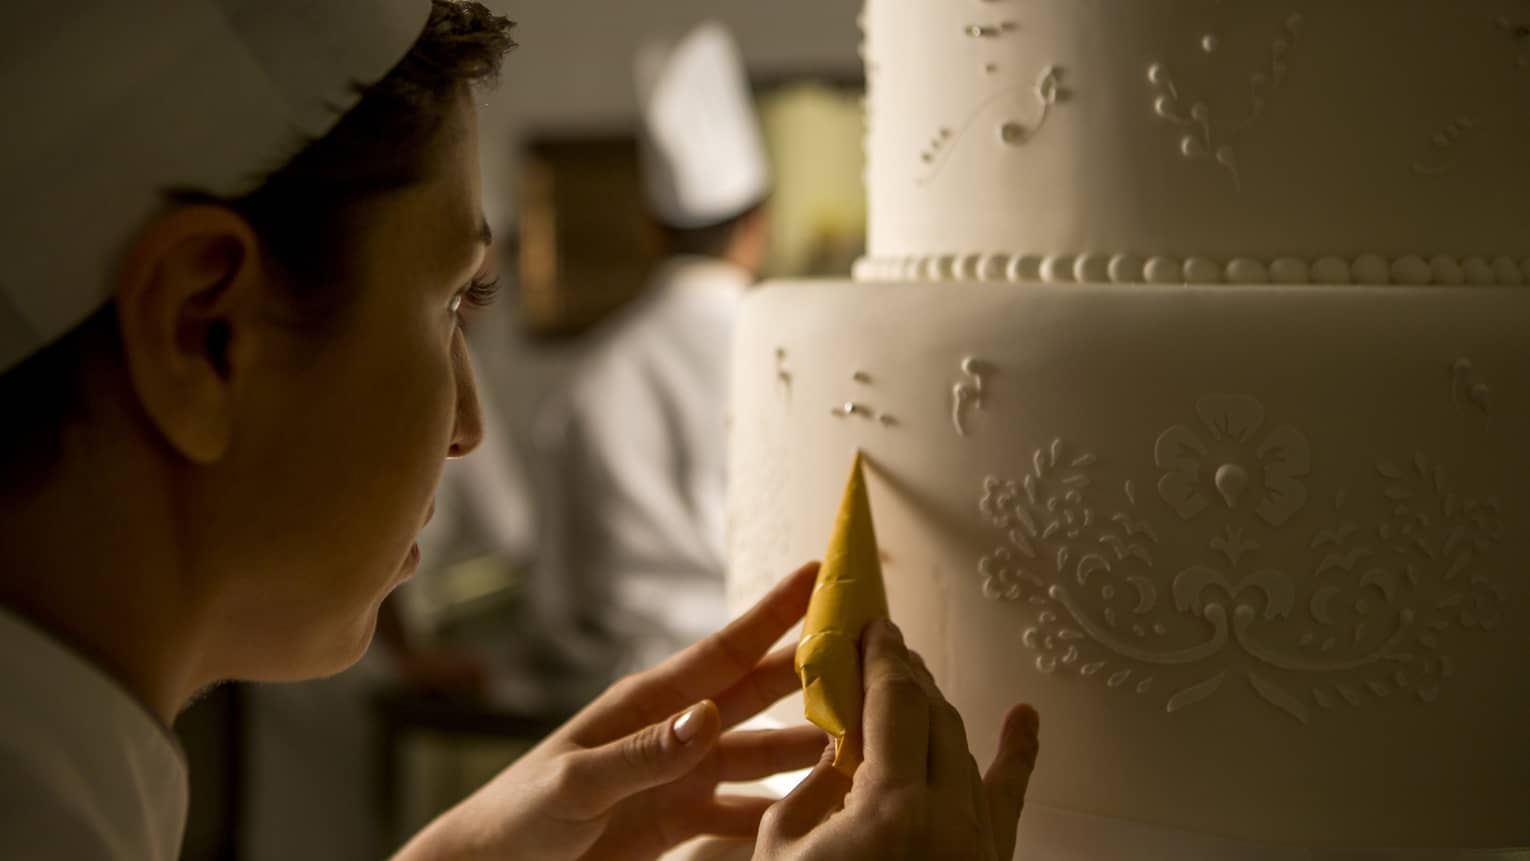 Pastry chef adds decorative details to tiered white wedding cake